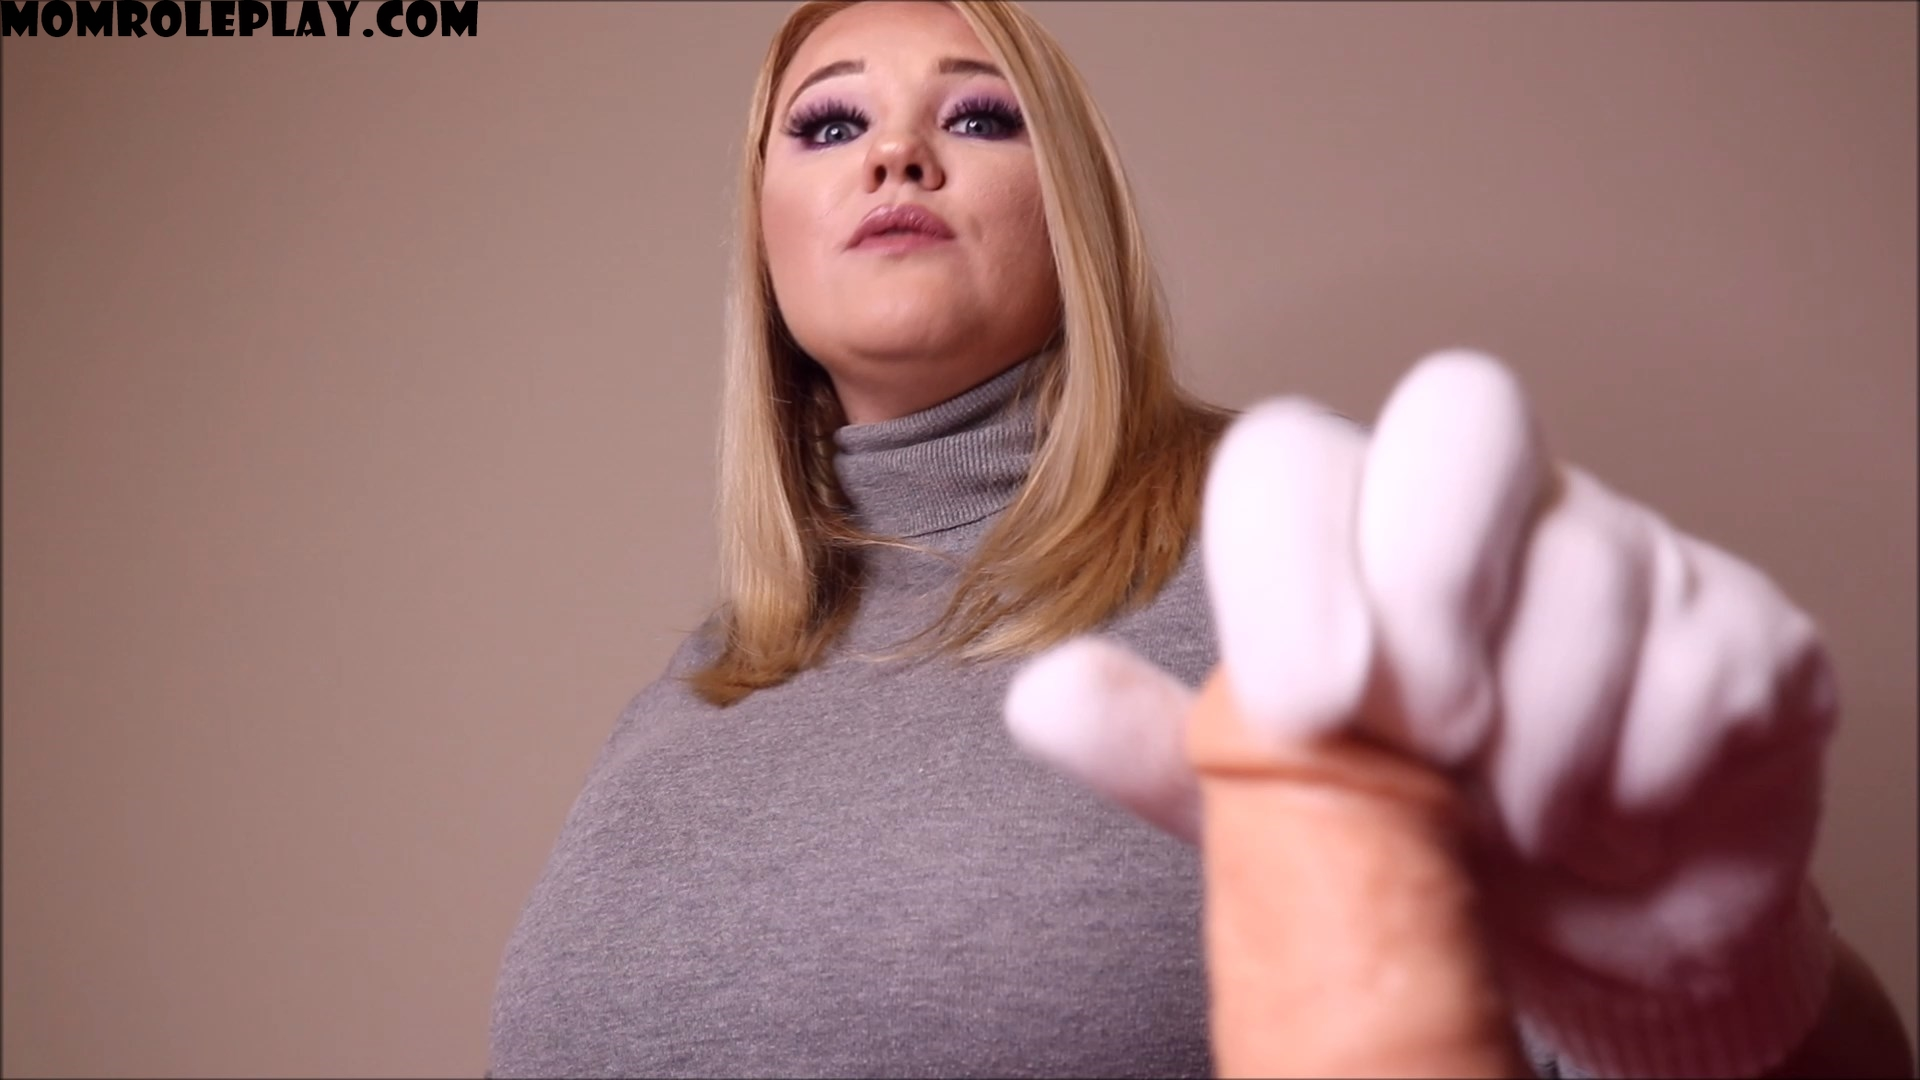 Annabelle Rogers - Mommy Jerks You Off With Gloves